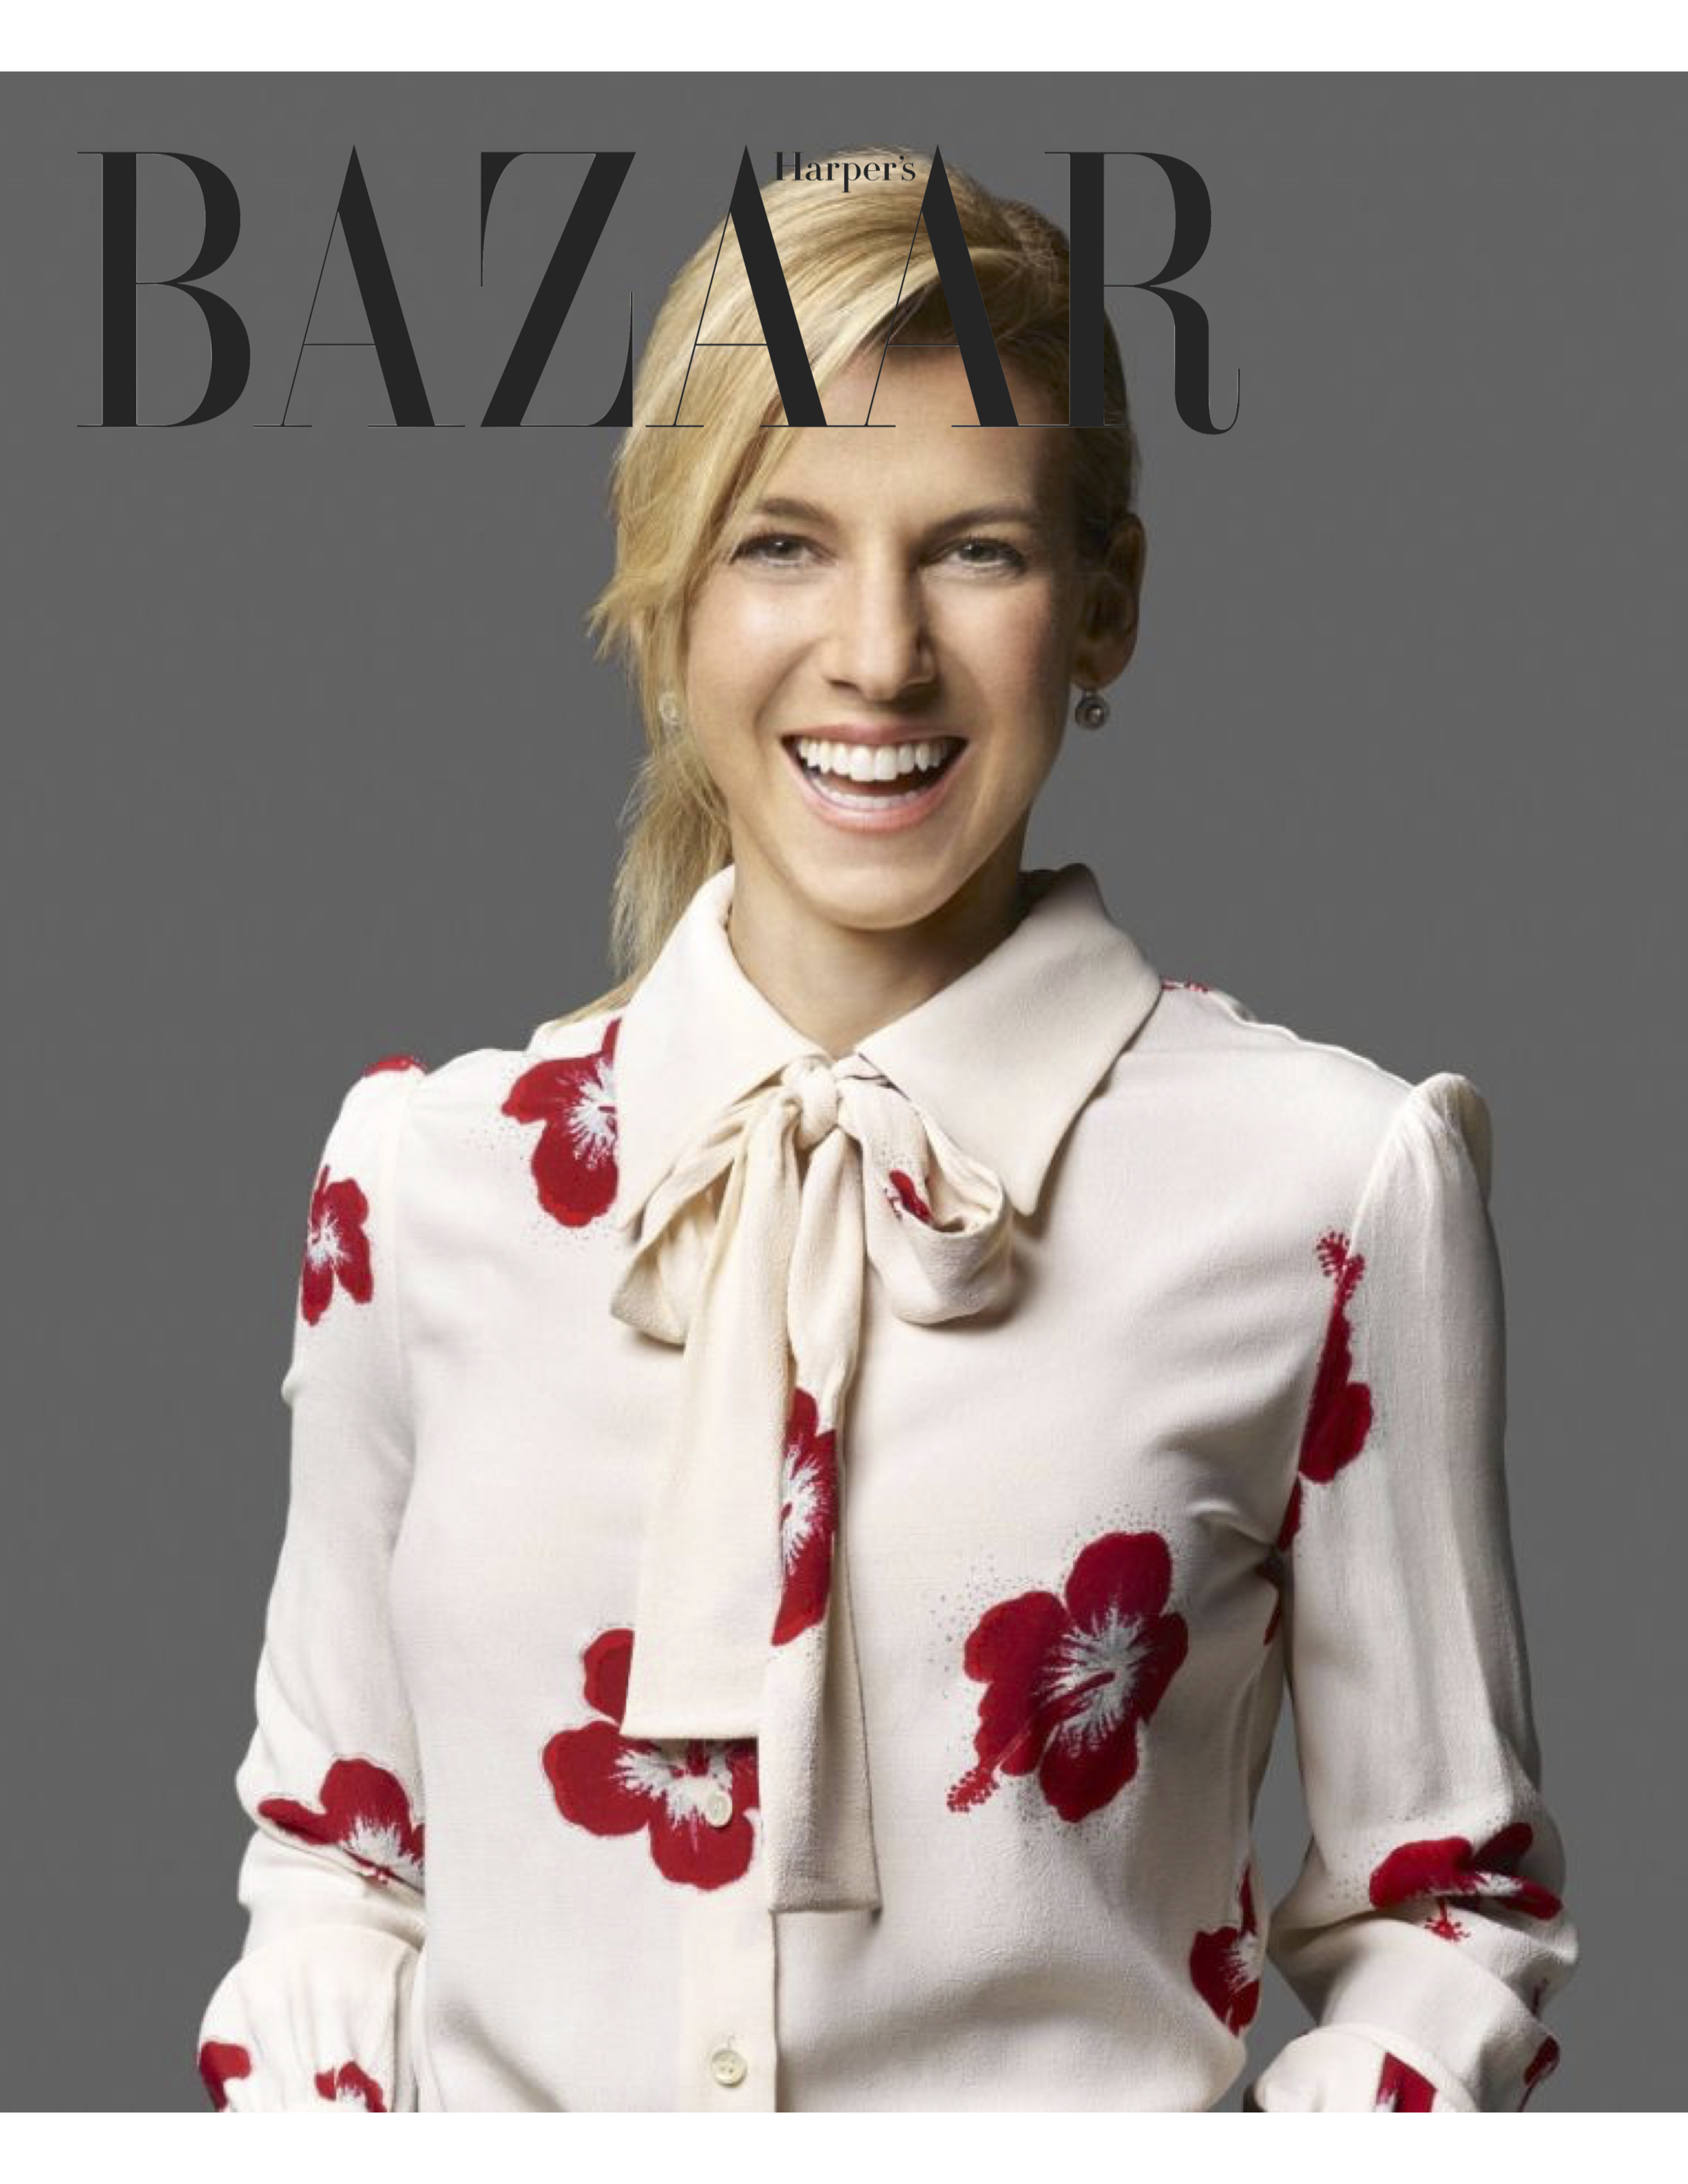 """8:00 A.M.  After the kids are on their school buses, I do some form of exercise. I have so many injuries, I'm pretty much an orthopedic nightmare. I work with  AJ Fisher of Corectology , who is really patient and intelligent about how not to get hurt. -Excerpt from the May Issue of Harpers Bazaar Interview """" A Day In The Life of  Jessica Seinfeld  """", author and philanthropist"""